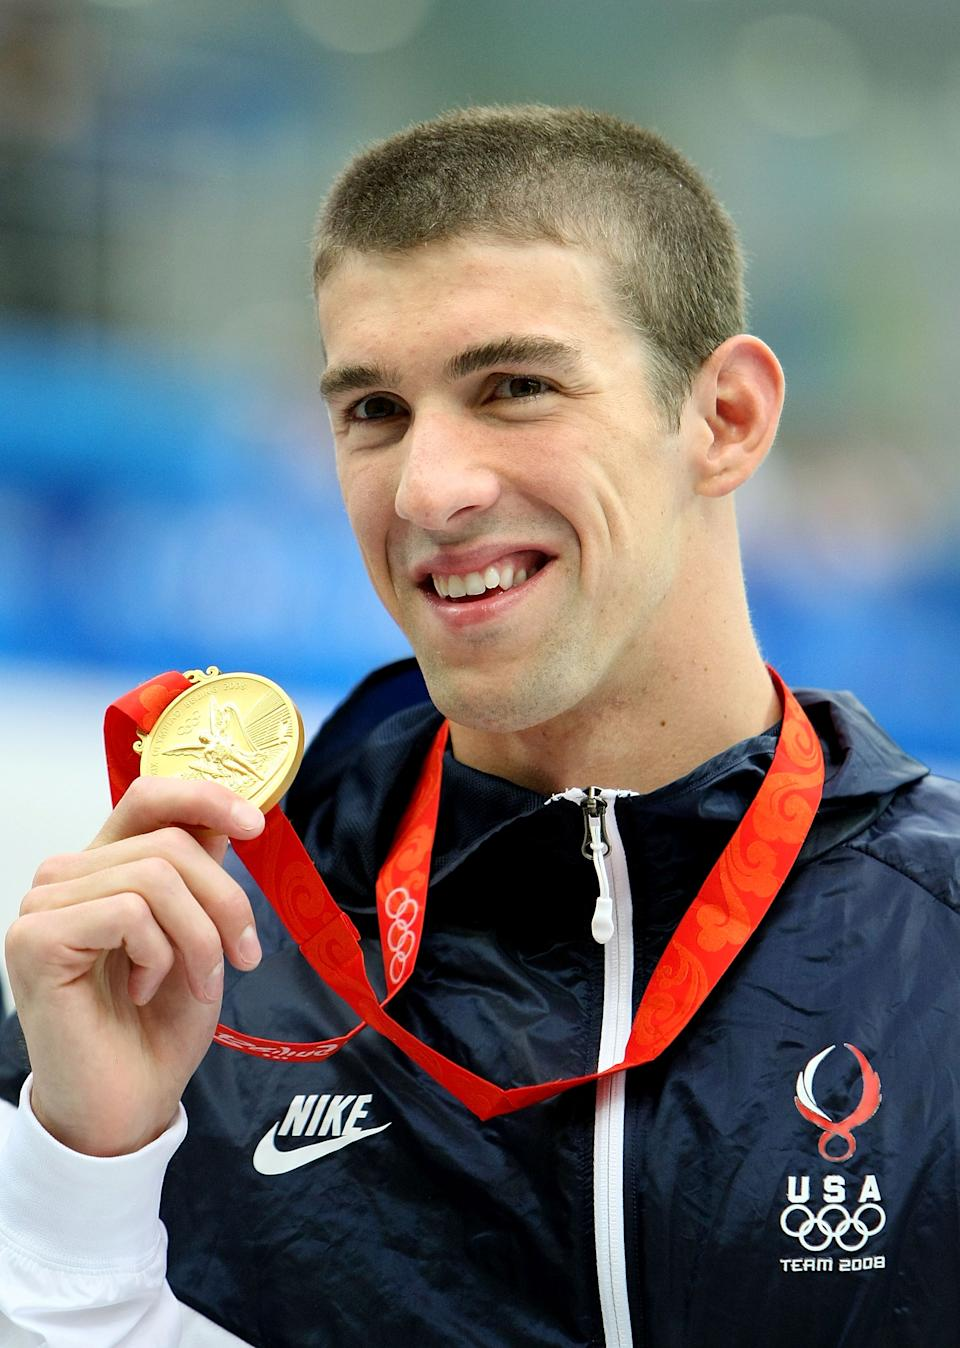 <b>Medal No. 11</b><br>Michael Phelps poses with the gold medal during the medal ceremony for the Men's 200m Freestyle held at the National Aquatics Center on Day 4 of the Beijing 2008 Olympic Games on August 12, 2008 in Beijing, China. It was another world record for Phelps.